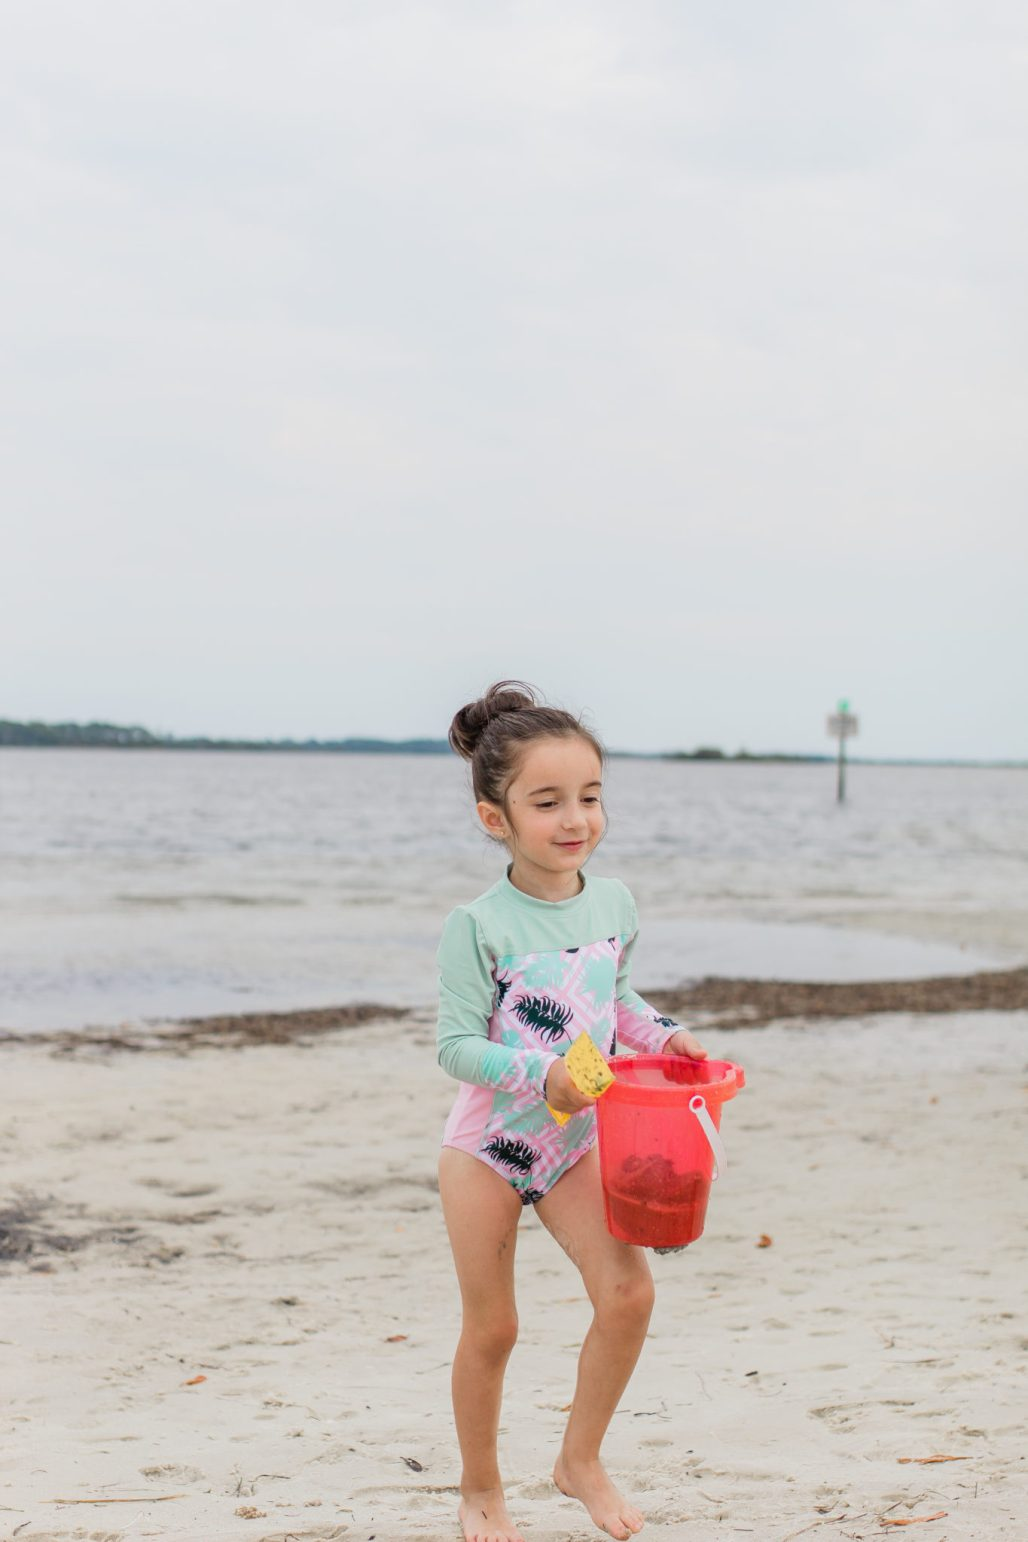 simple beach packing list for toddlers, surviving a day at the beach with kids, beach hacks for kids, beach tips for families, spending a day at the beach with babies and kids